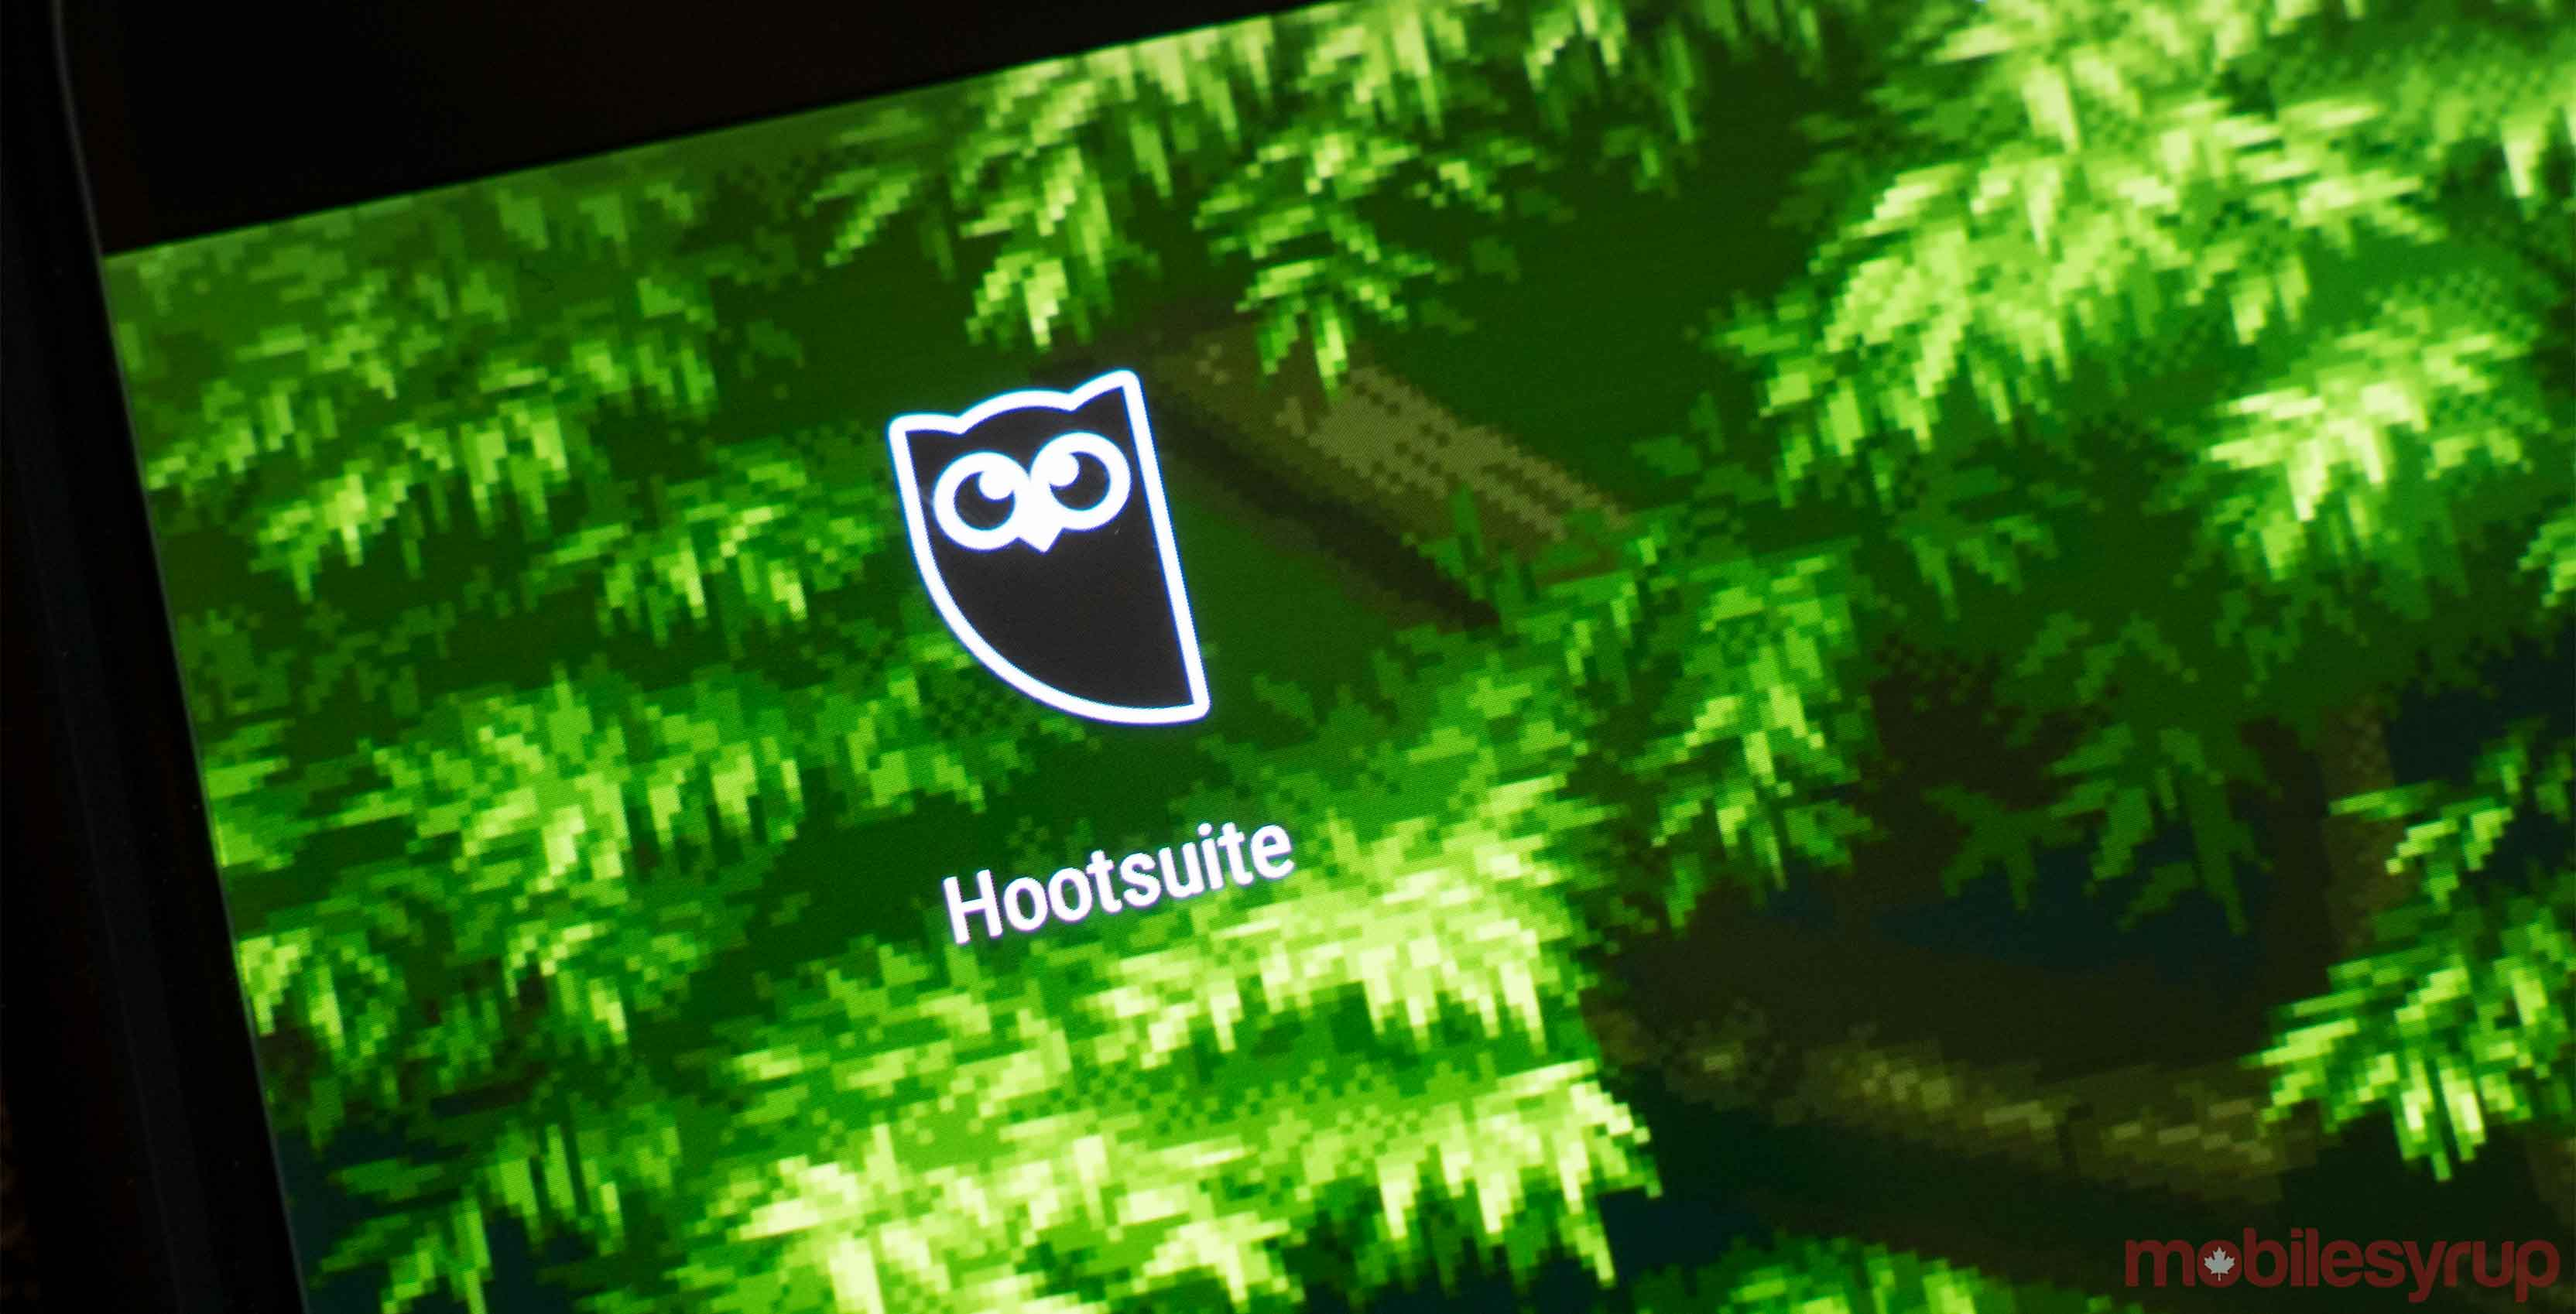 Hootsuite app on phone